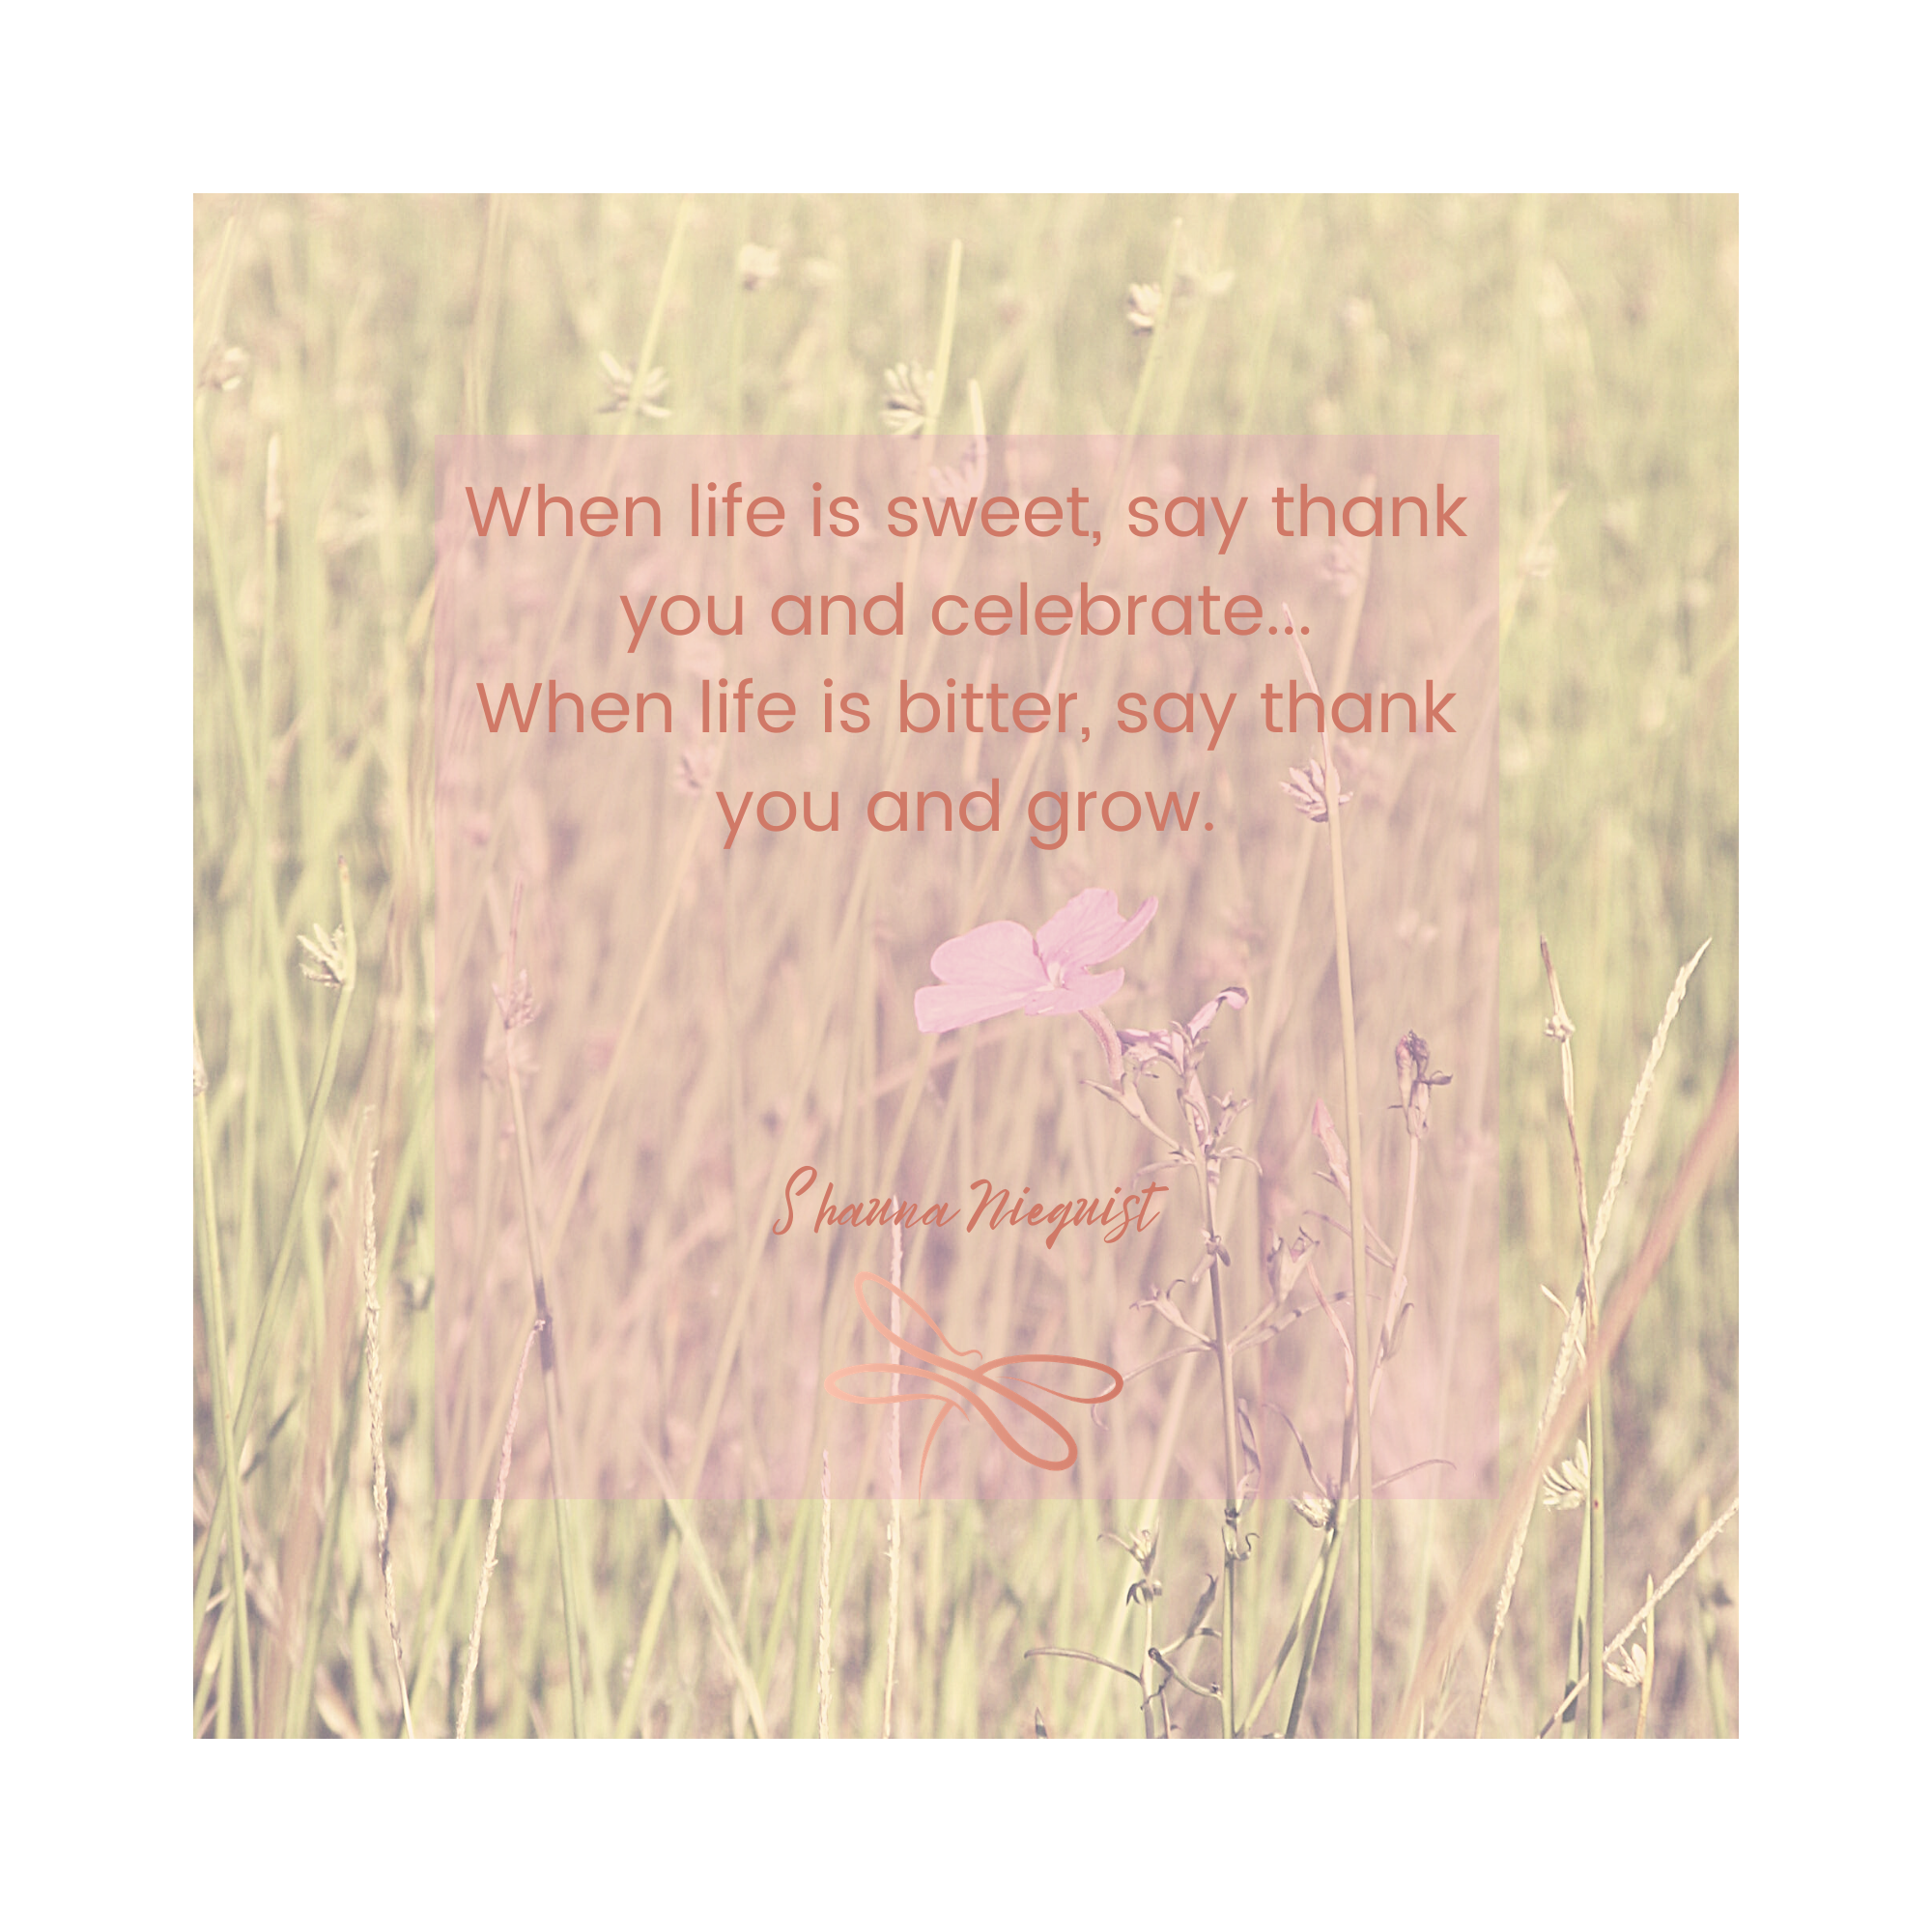 bittersweet quote